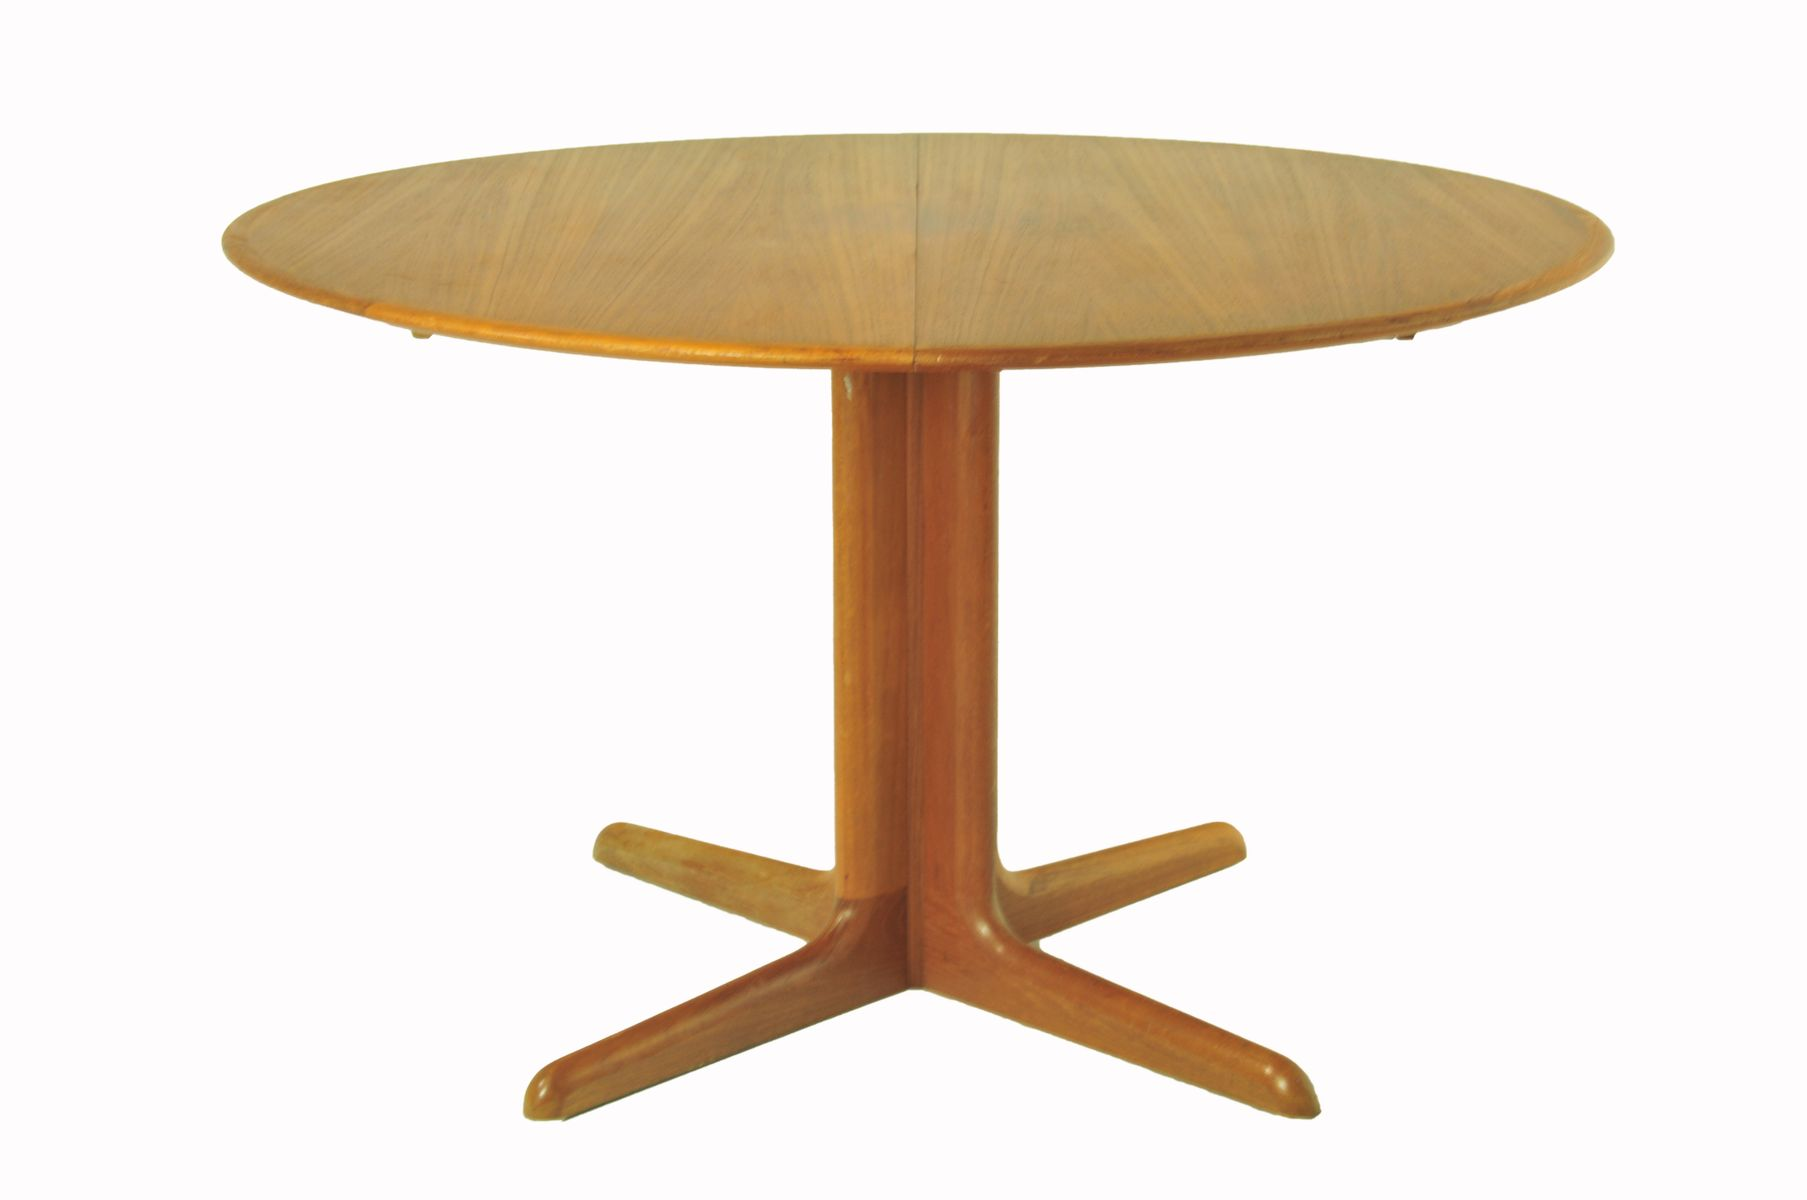 Dining Table from Dyrlund 1960s for sale at Pamono : dining table from dyrlund 1960s 1 from www.pamono.com size 1807 x 1200 jpeg 50kB